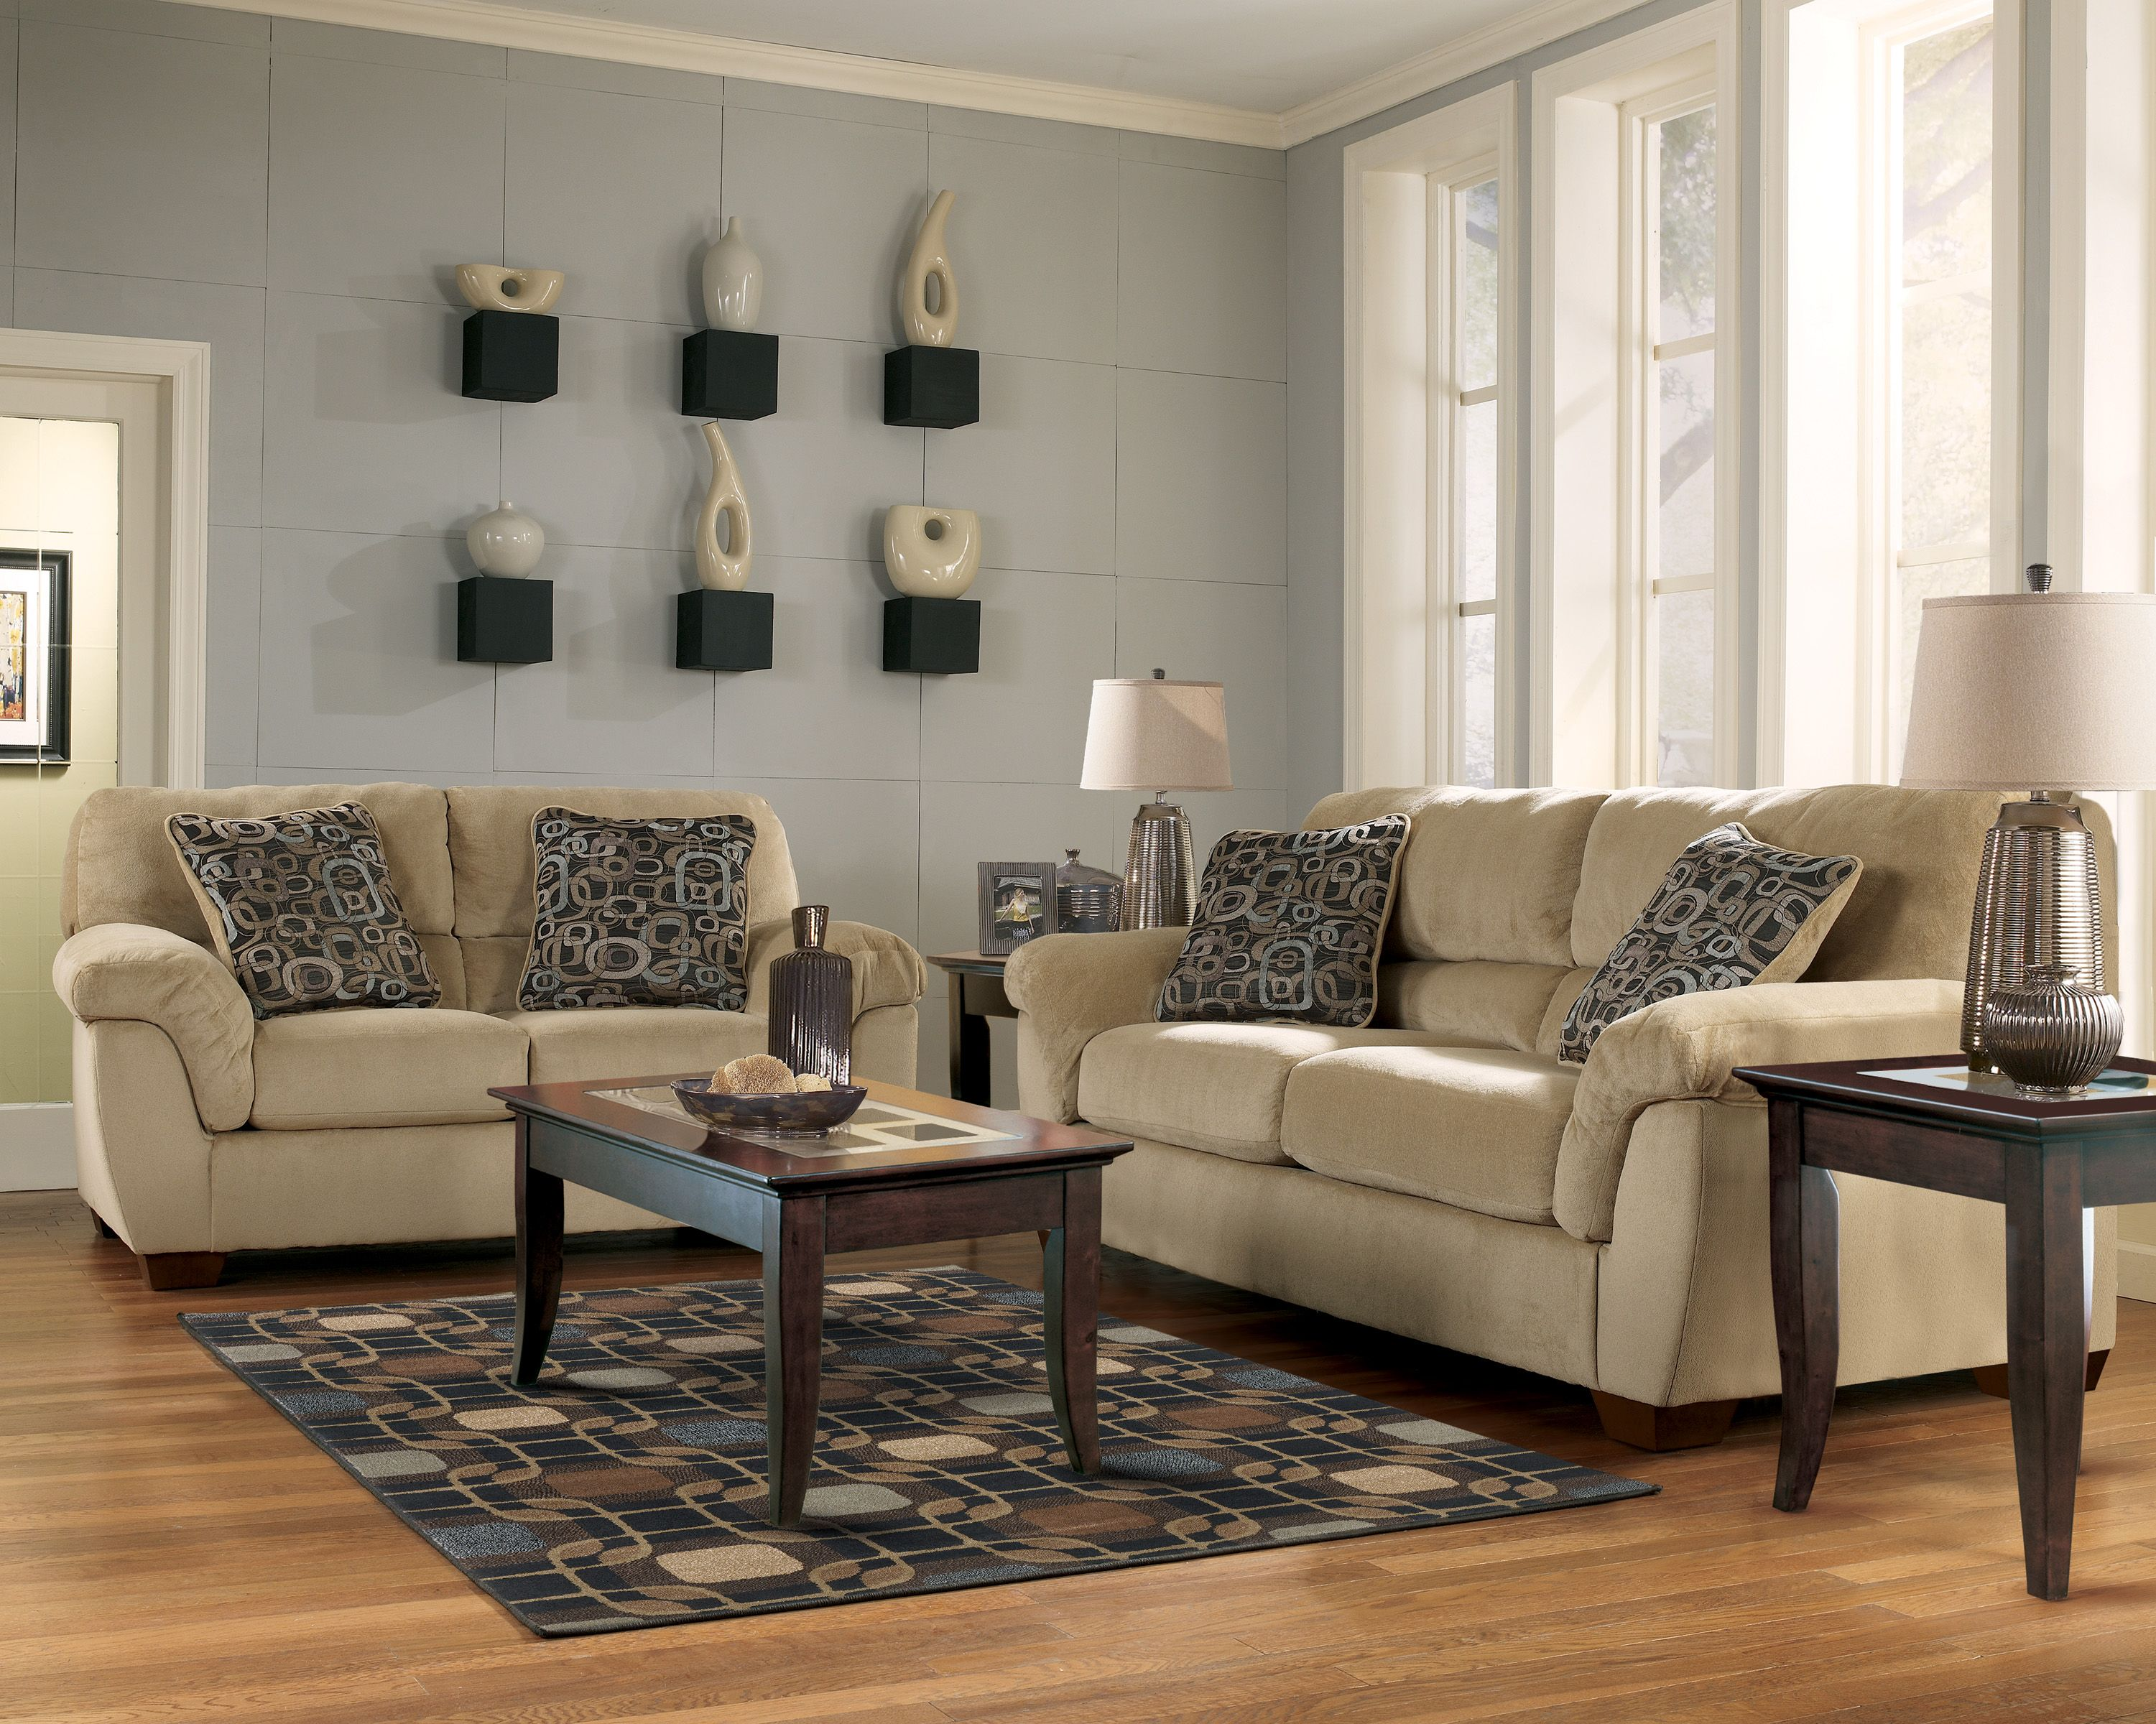 Discontinued Ashley Furniture As 84101 Discontinued 84101 Macie Sandstone Ashley Sofa And Loveseat Unique Living Room Furniture Sofa Decor Ashley Furniture